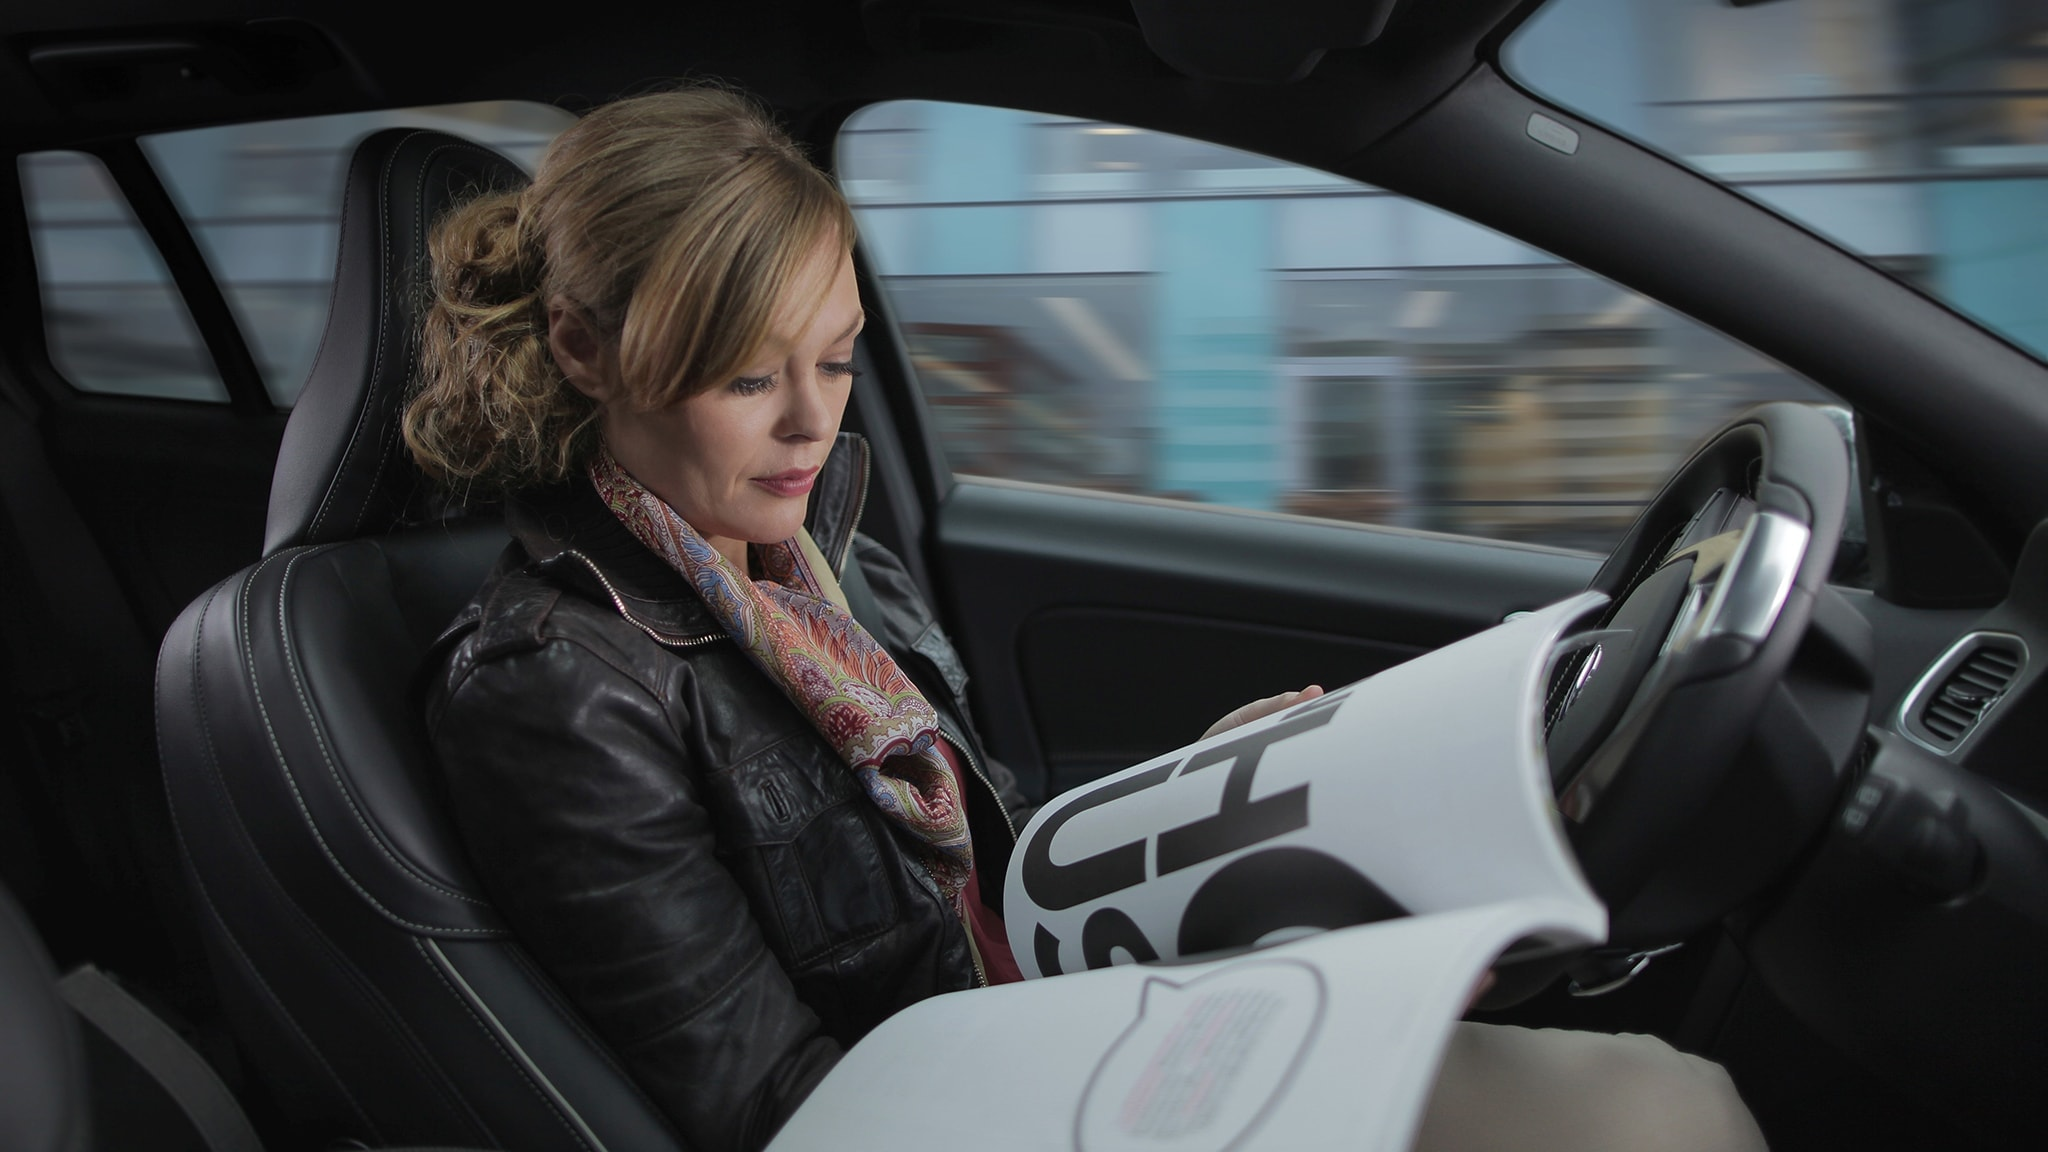 Inside_Our_Vision_Volvo_Future_of_Driving_Femme